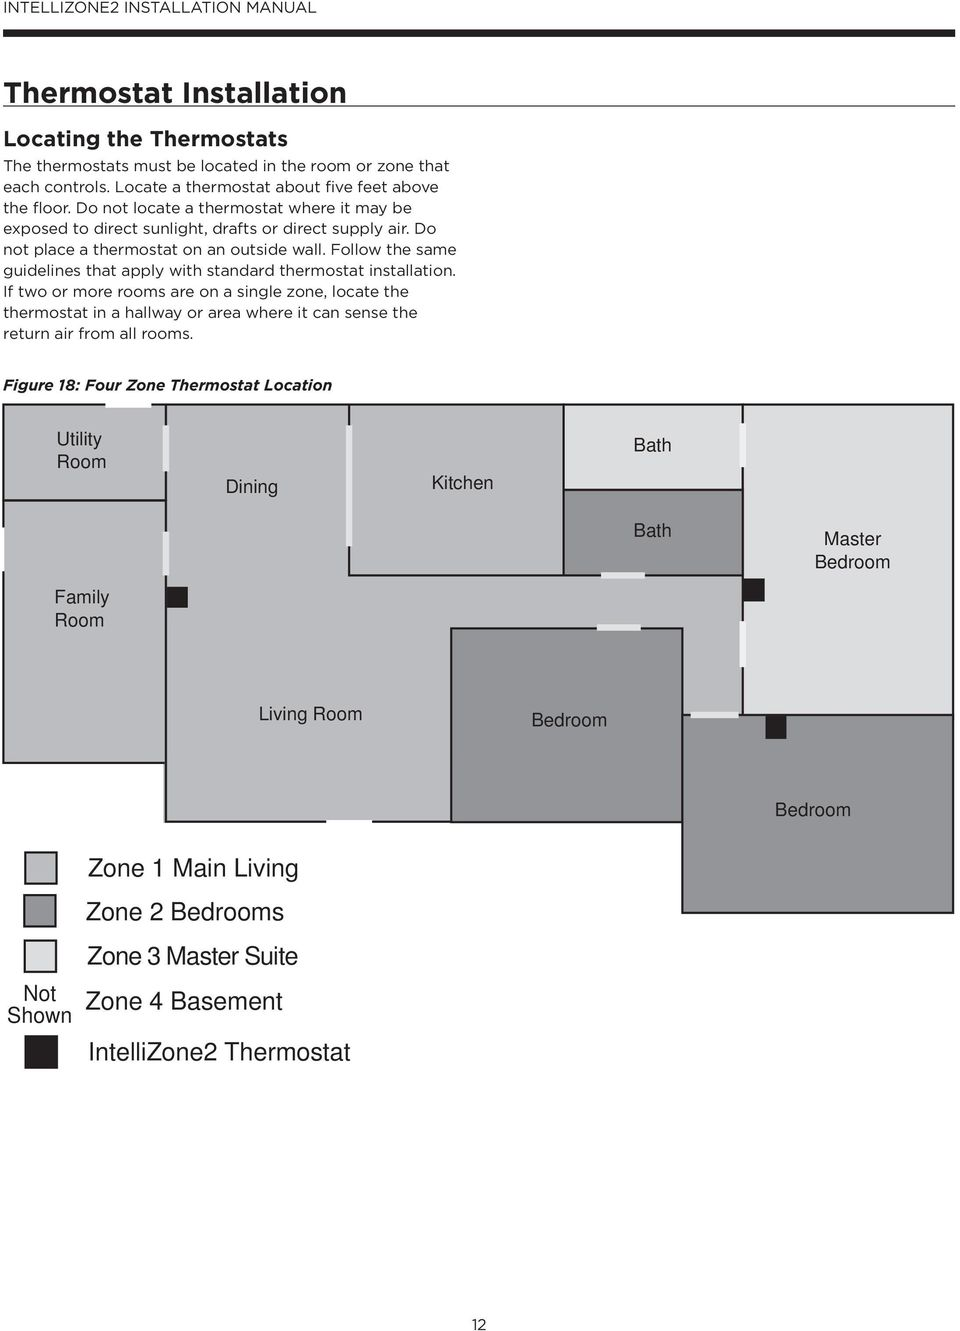 Intellizone2 Installation Manual Pdf Dual Zone Thermostat Wiring Diagram Follow The Same Guidelines That Apply With Standard